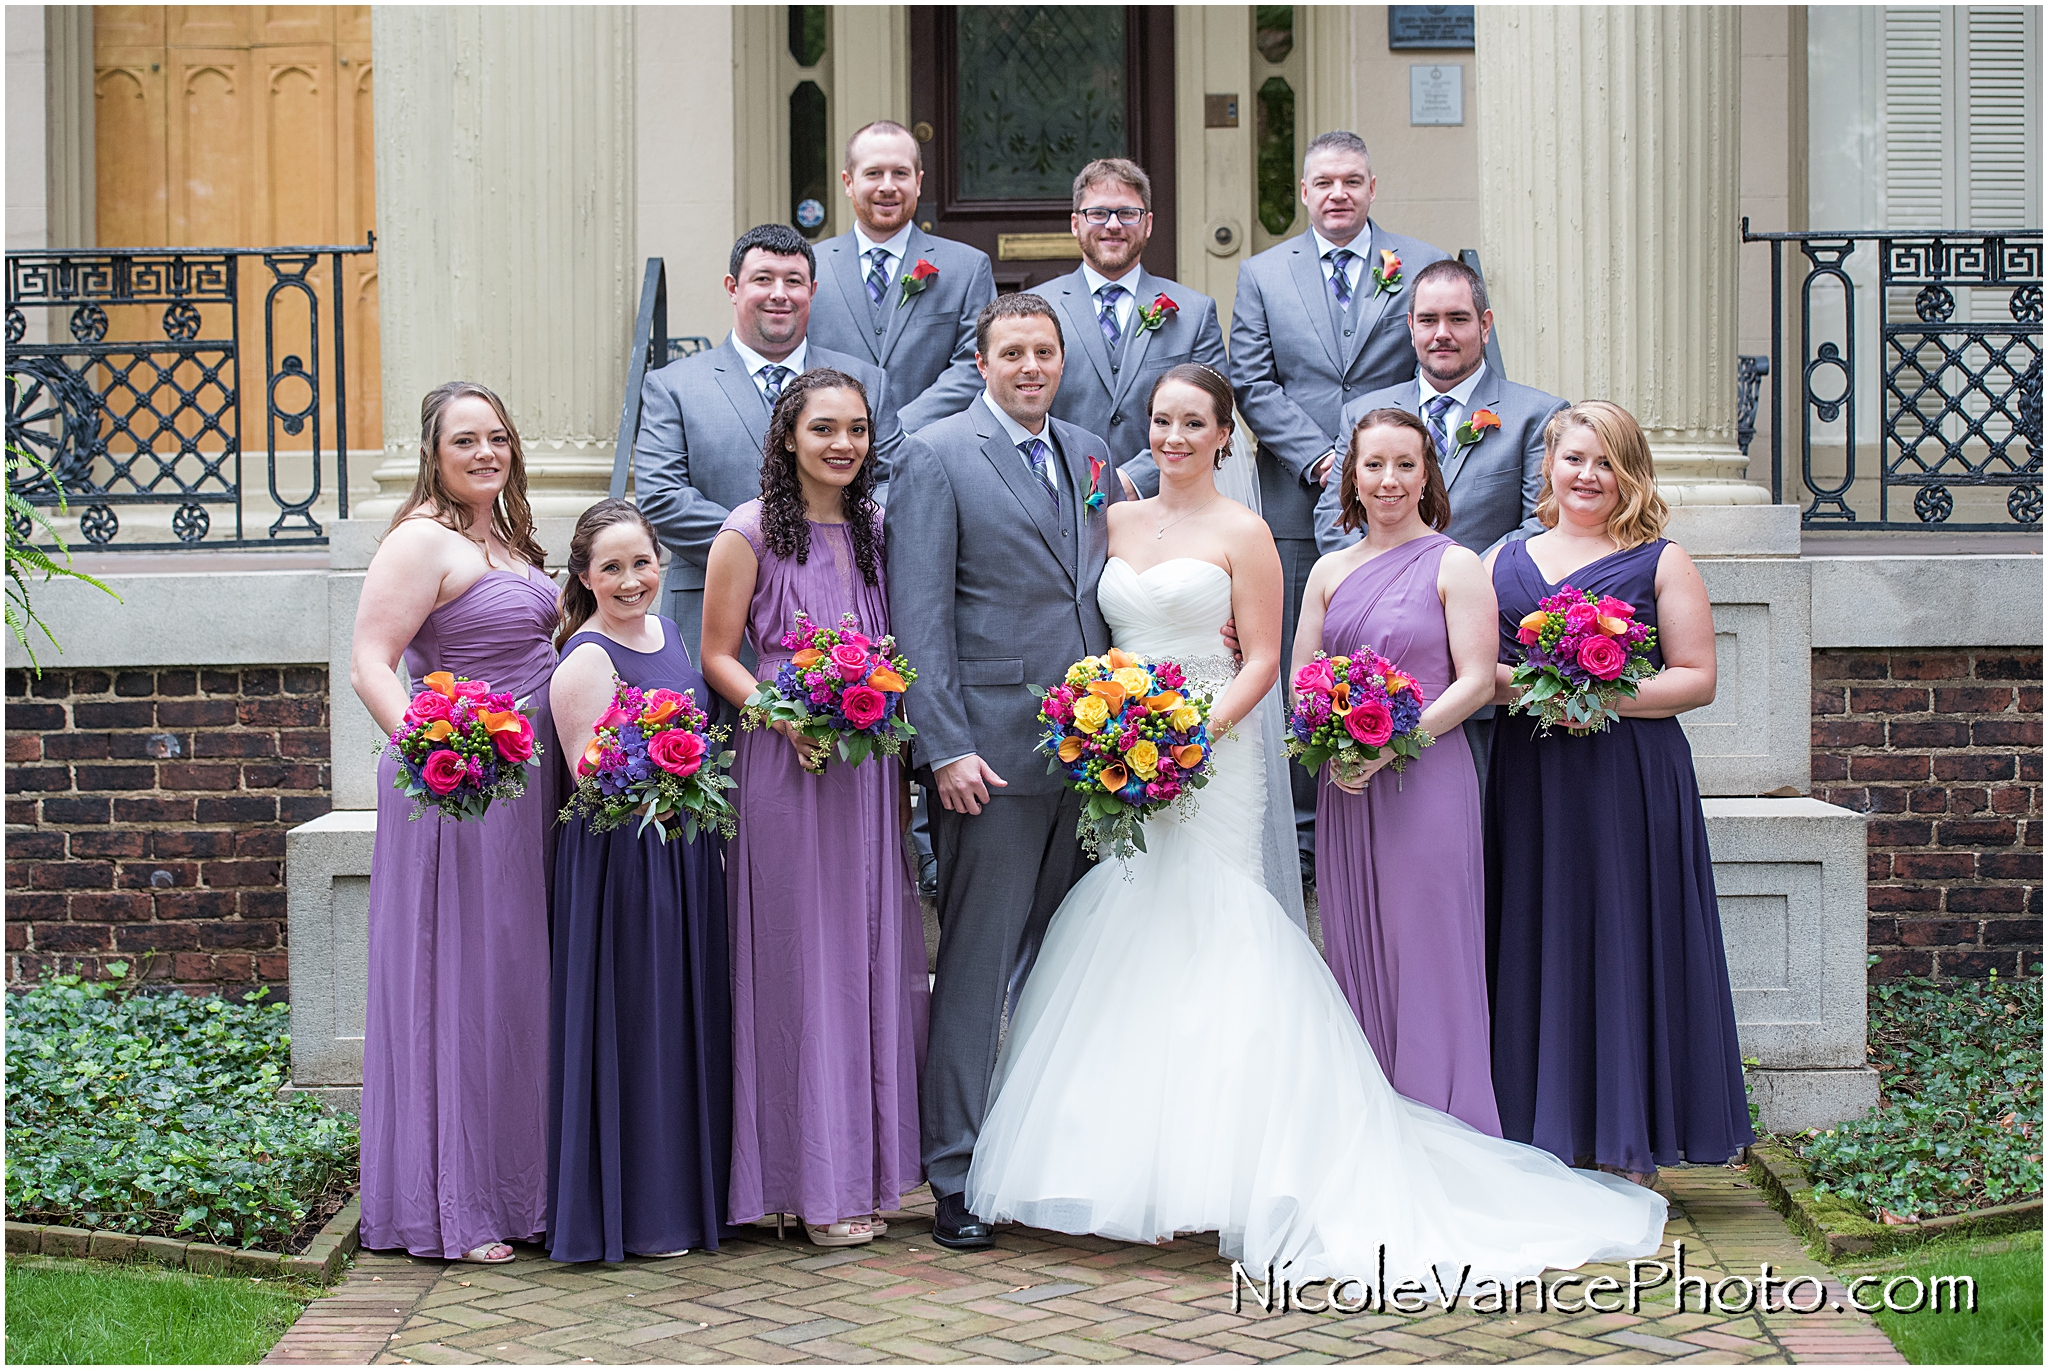 Bridal Party photo taken in front of the Garden Club of Virginia.